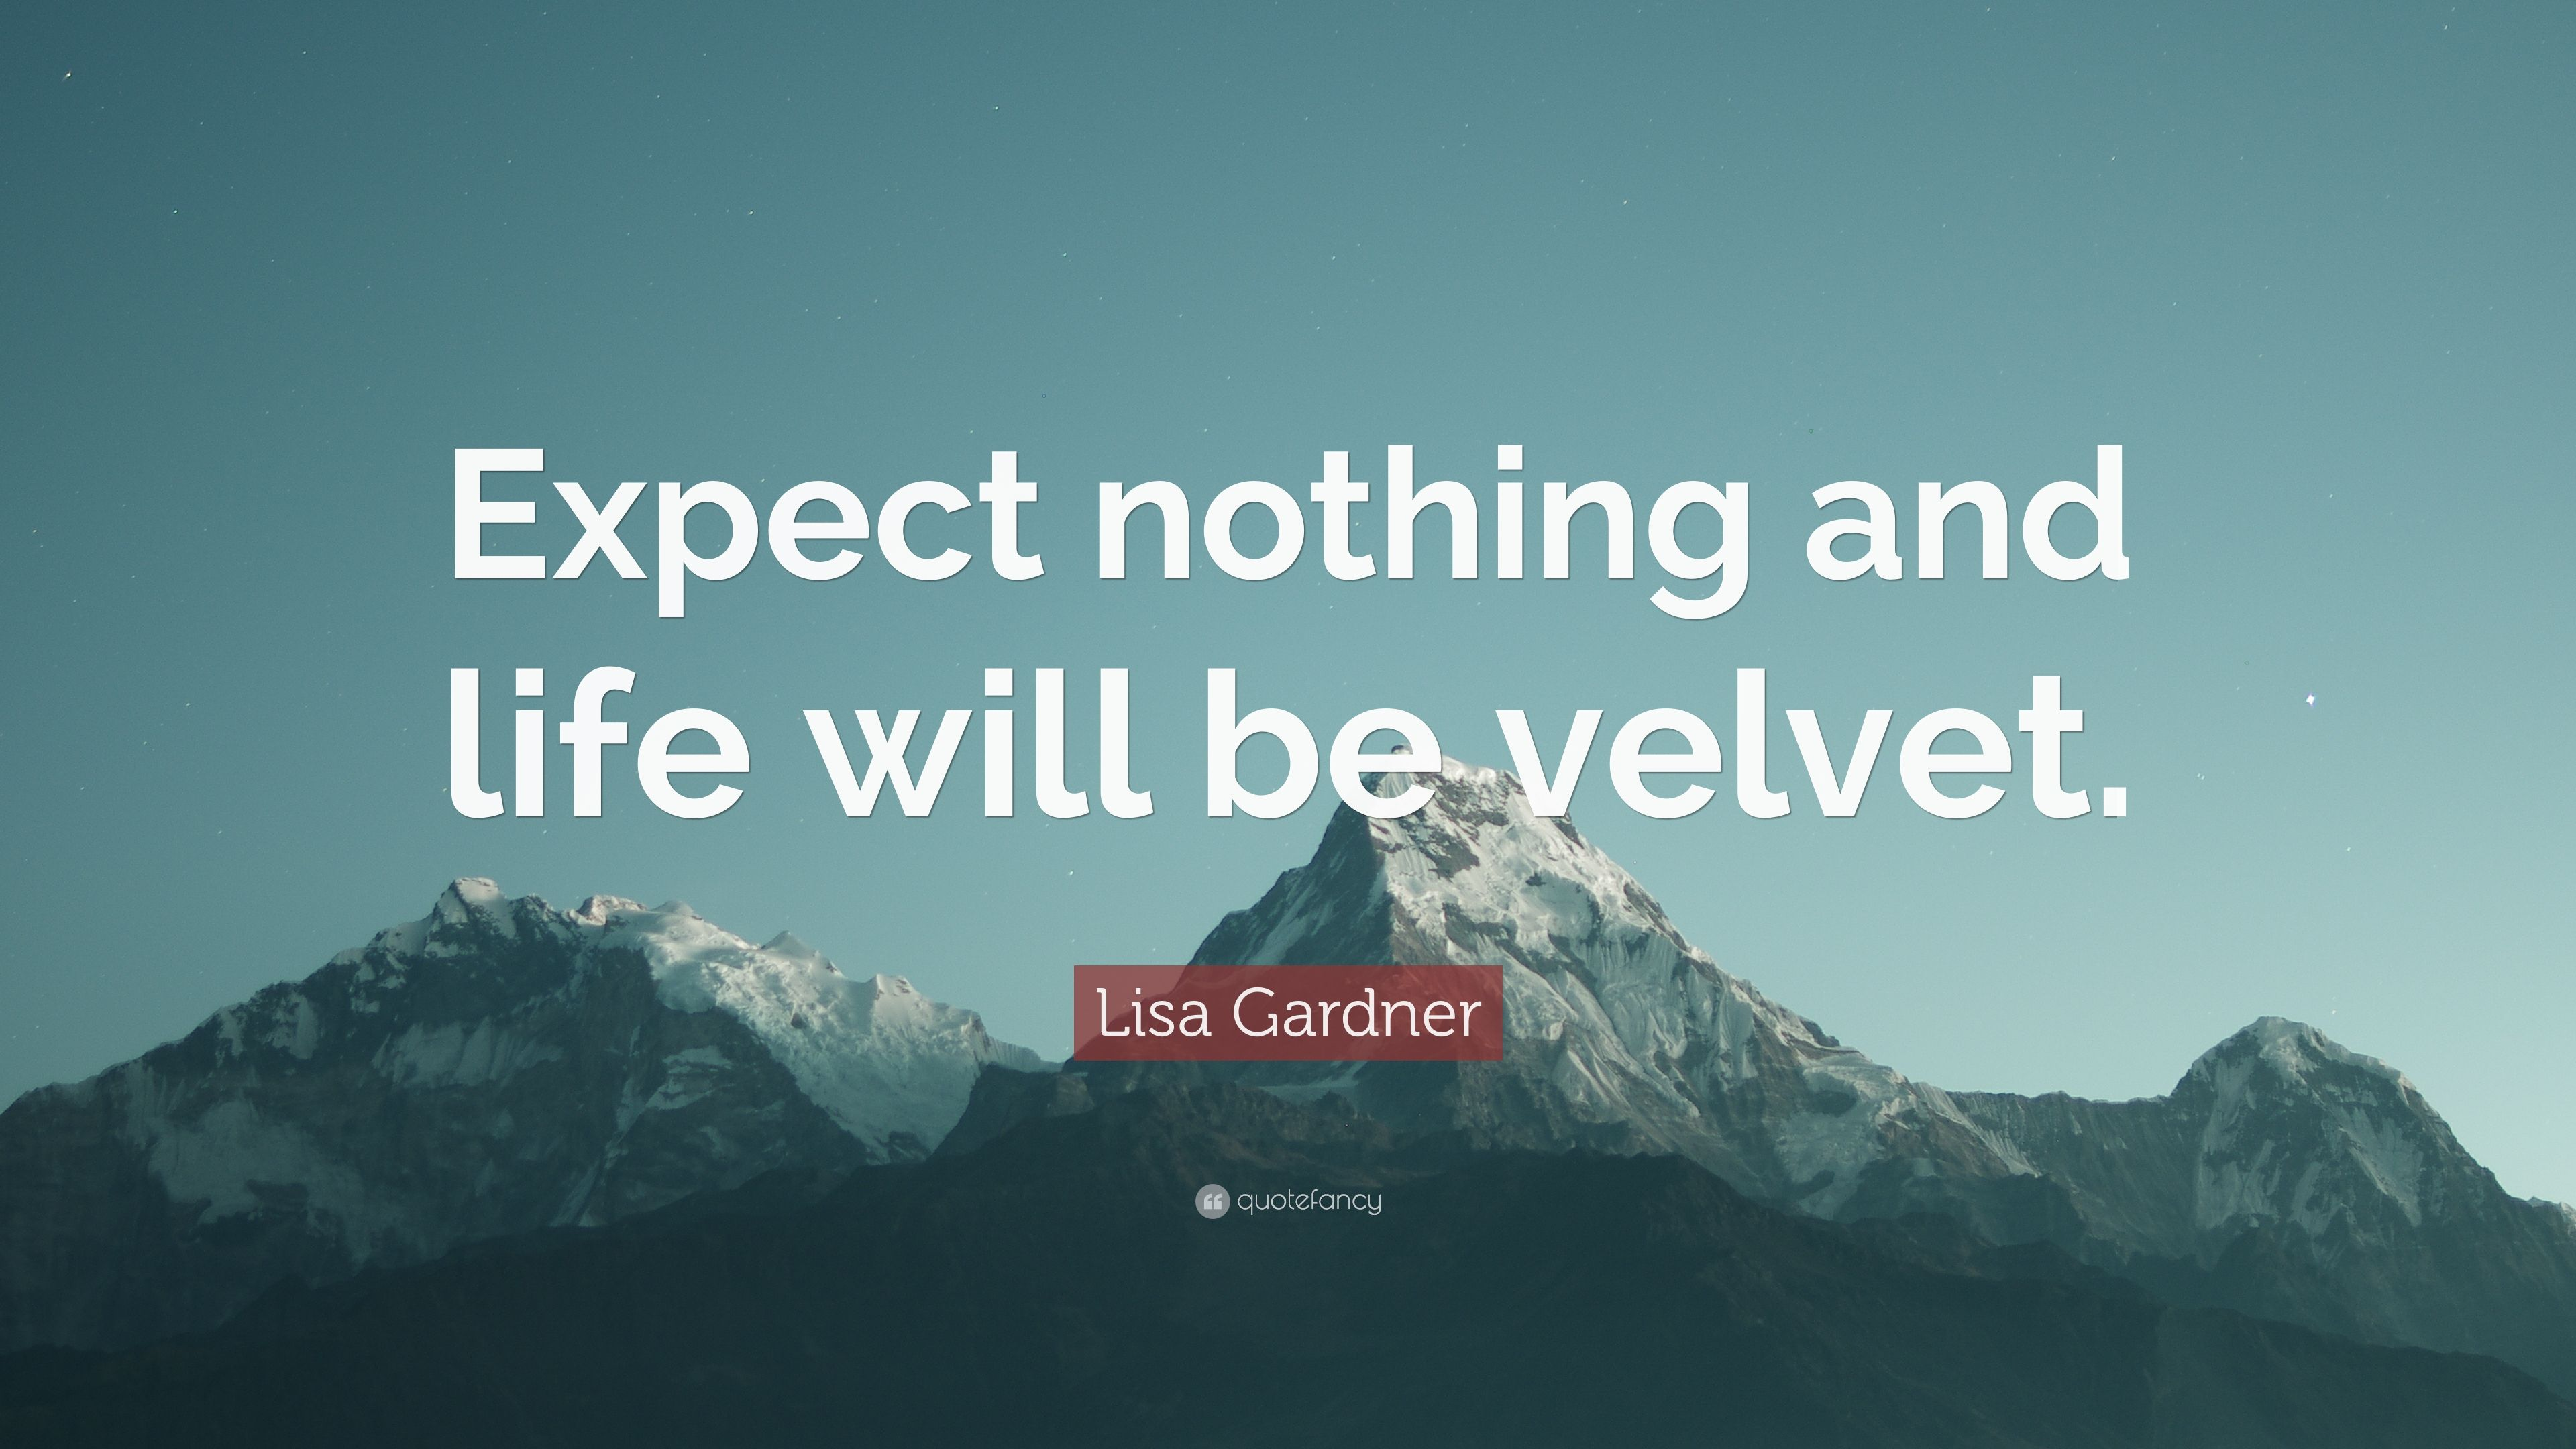 Captivating Lisa Gardner Quote: U201cExpect Nothing And Life Will Be Velvet.u201d